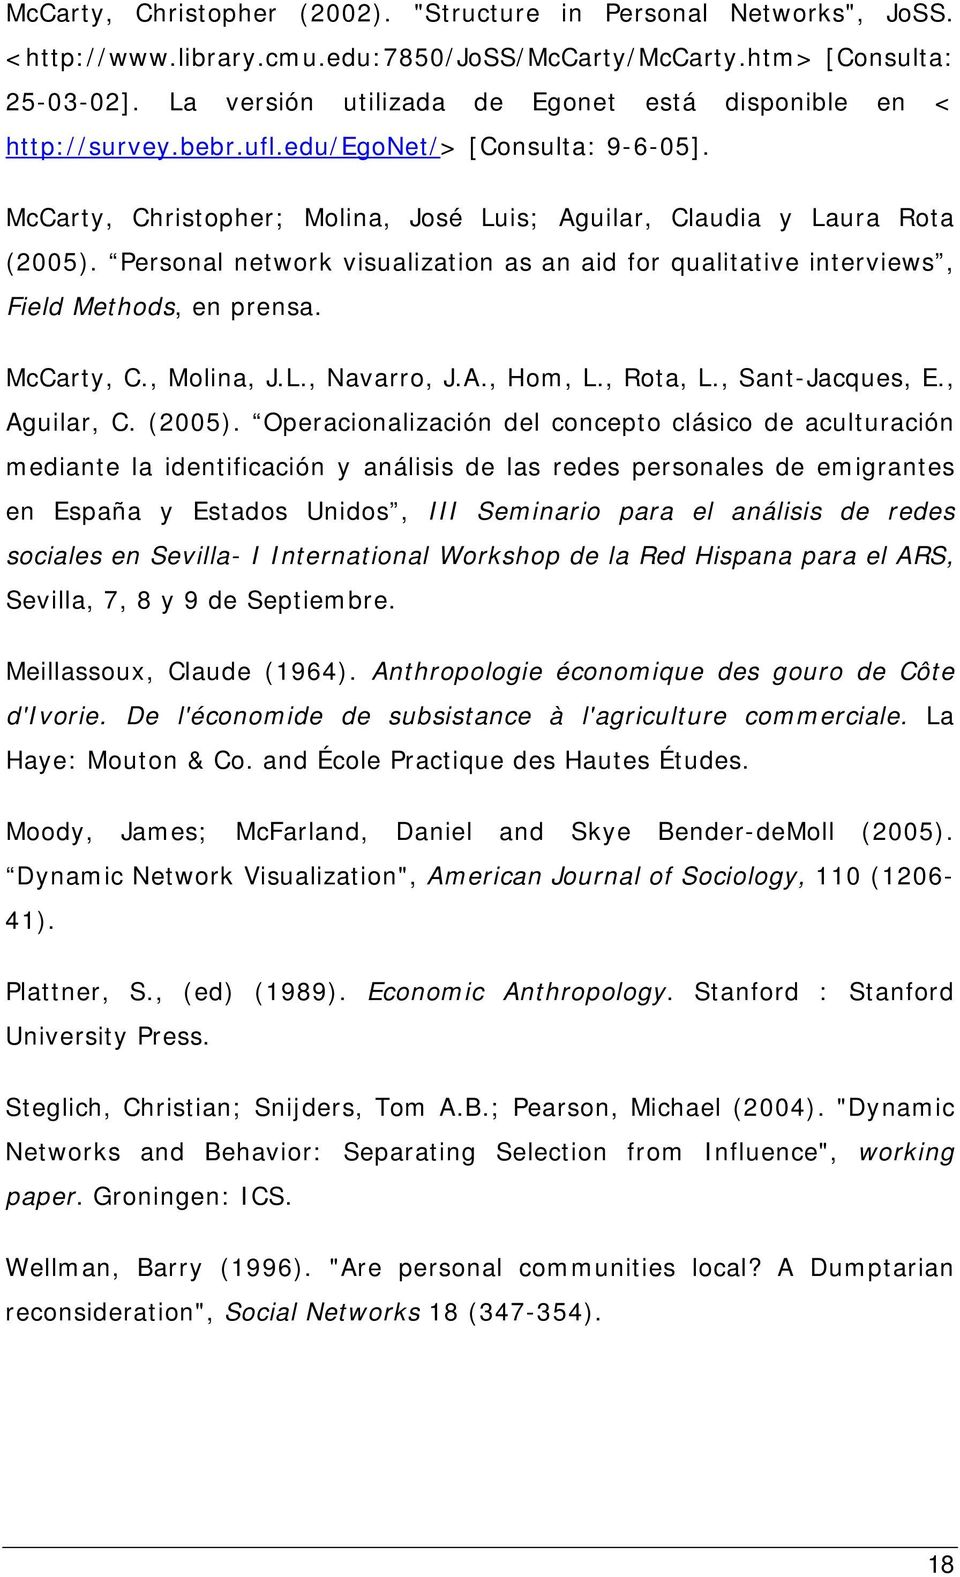 Personal network visualization as an aid for qualitative interviews, Field Methods, en prensa. McCarty, C., Molina, J.L., Navarro, J.A., Hom, L., Rota, L., Sant-Jacques, E., Aguilar, C. (2005).